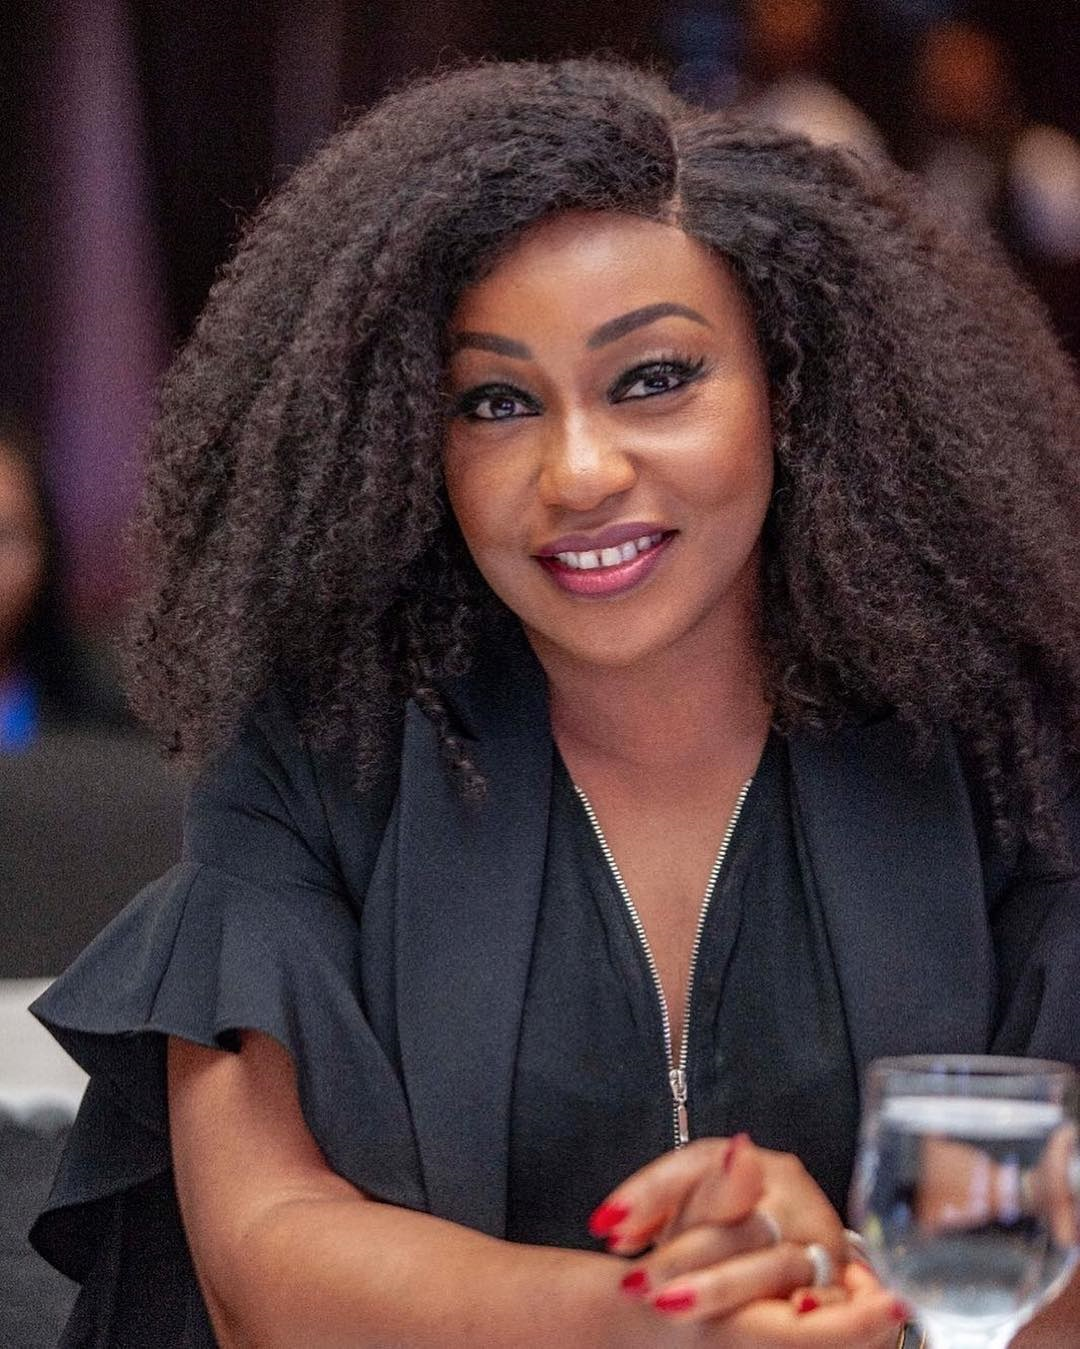 Rita Dominic's phone number leaked by Nina's hacker